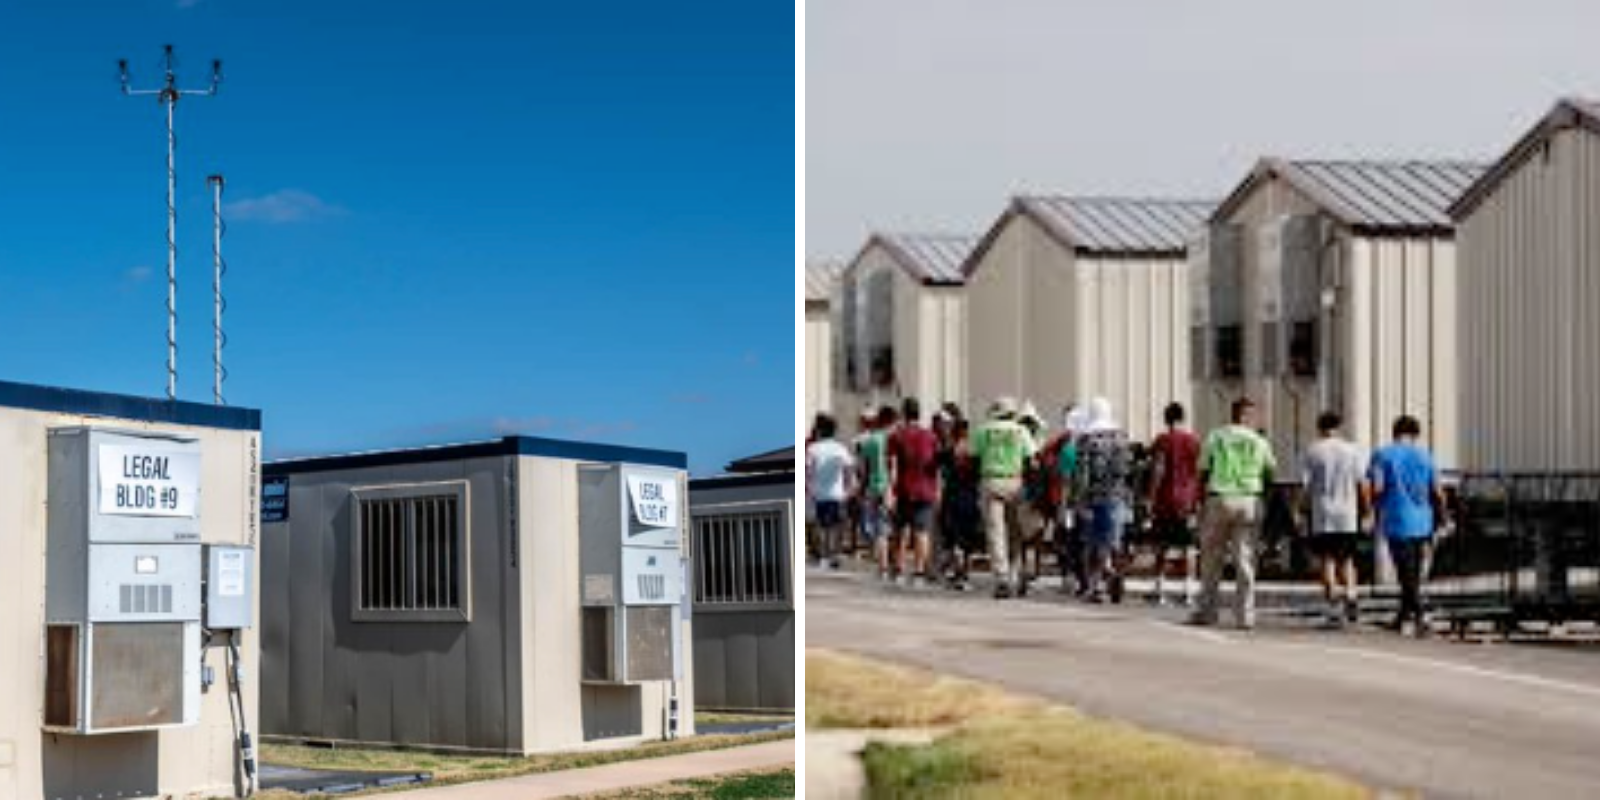 CBS refuses to show images of 'migrant facilities for children'